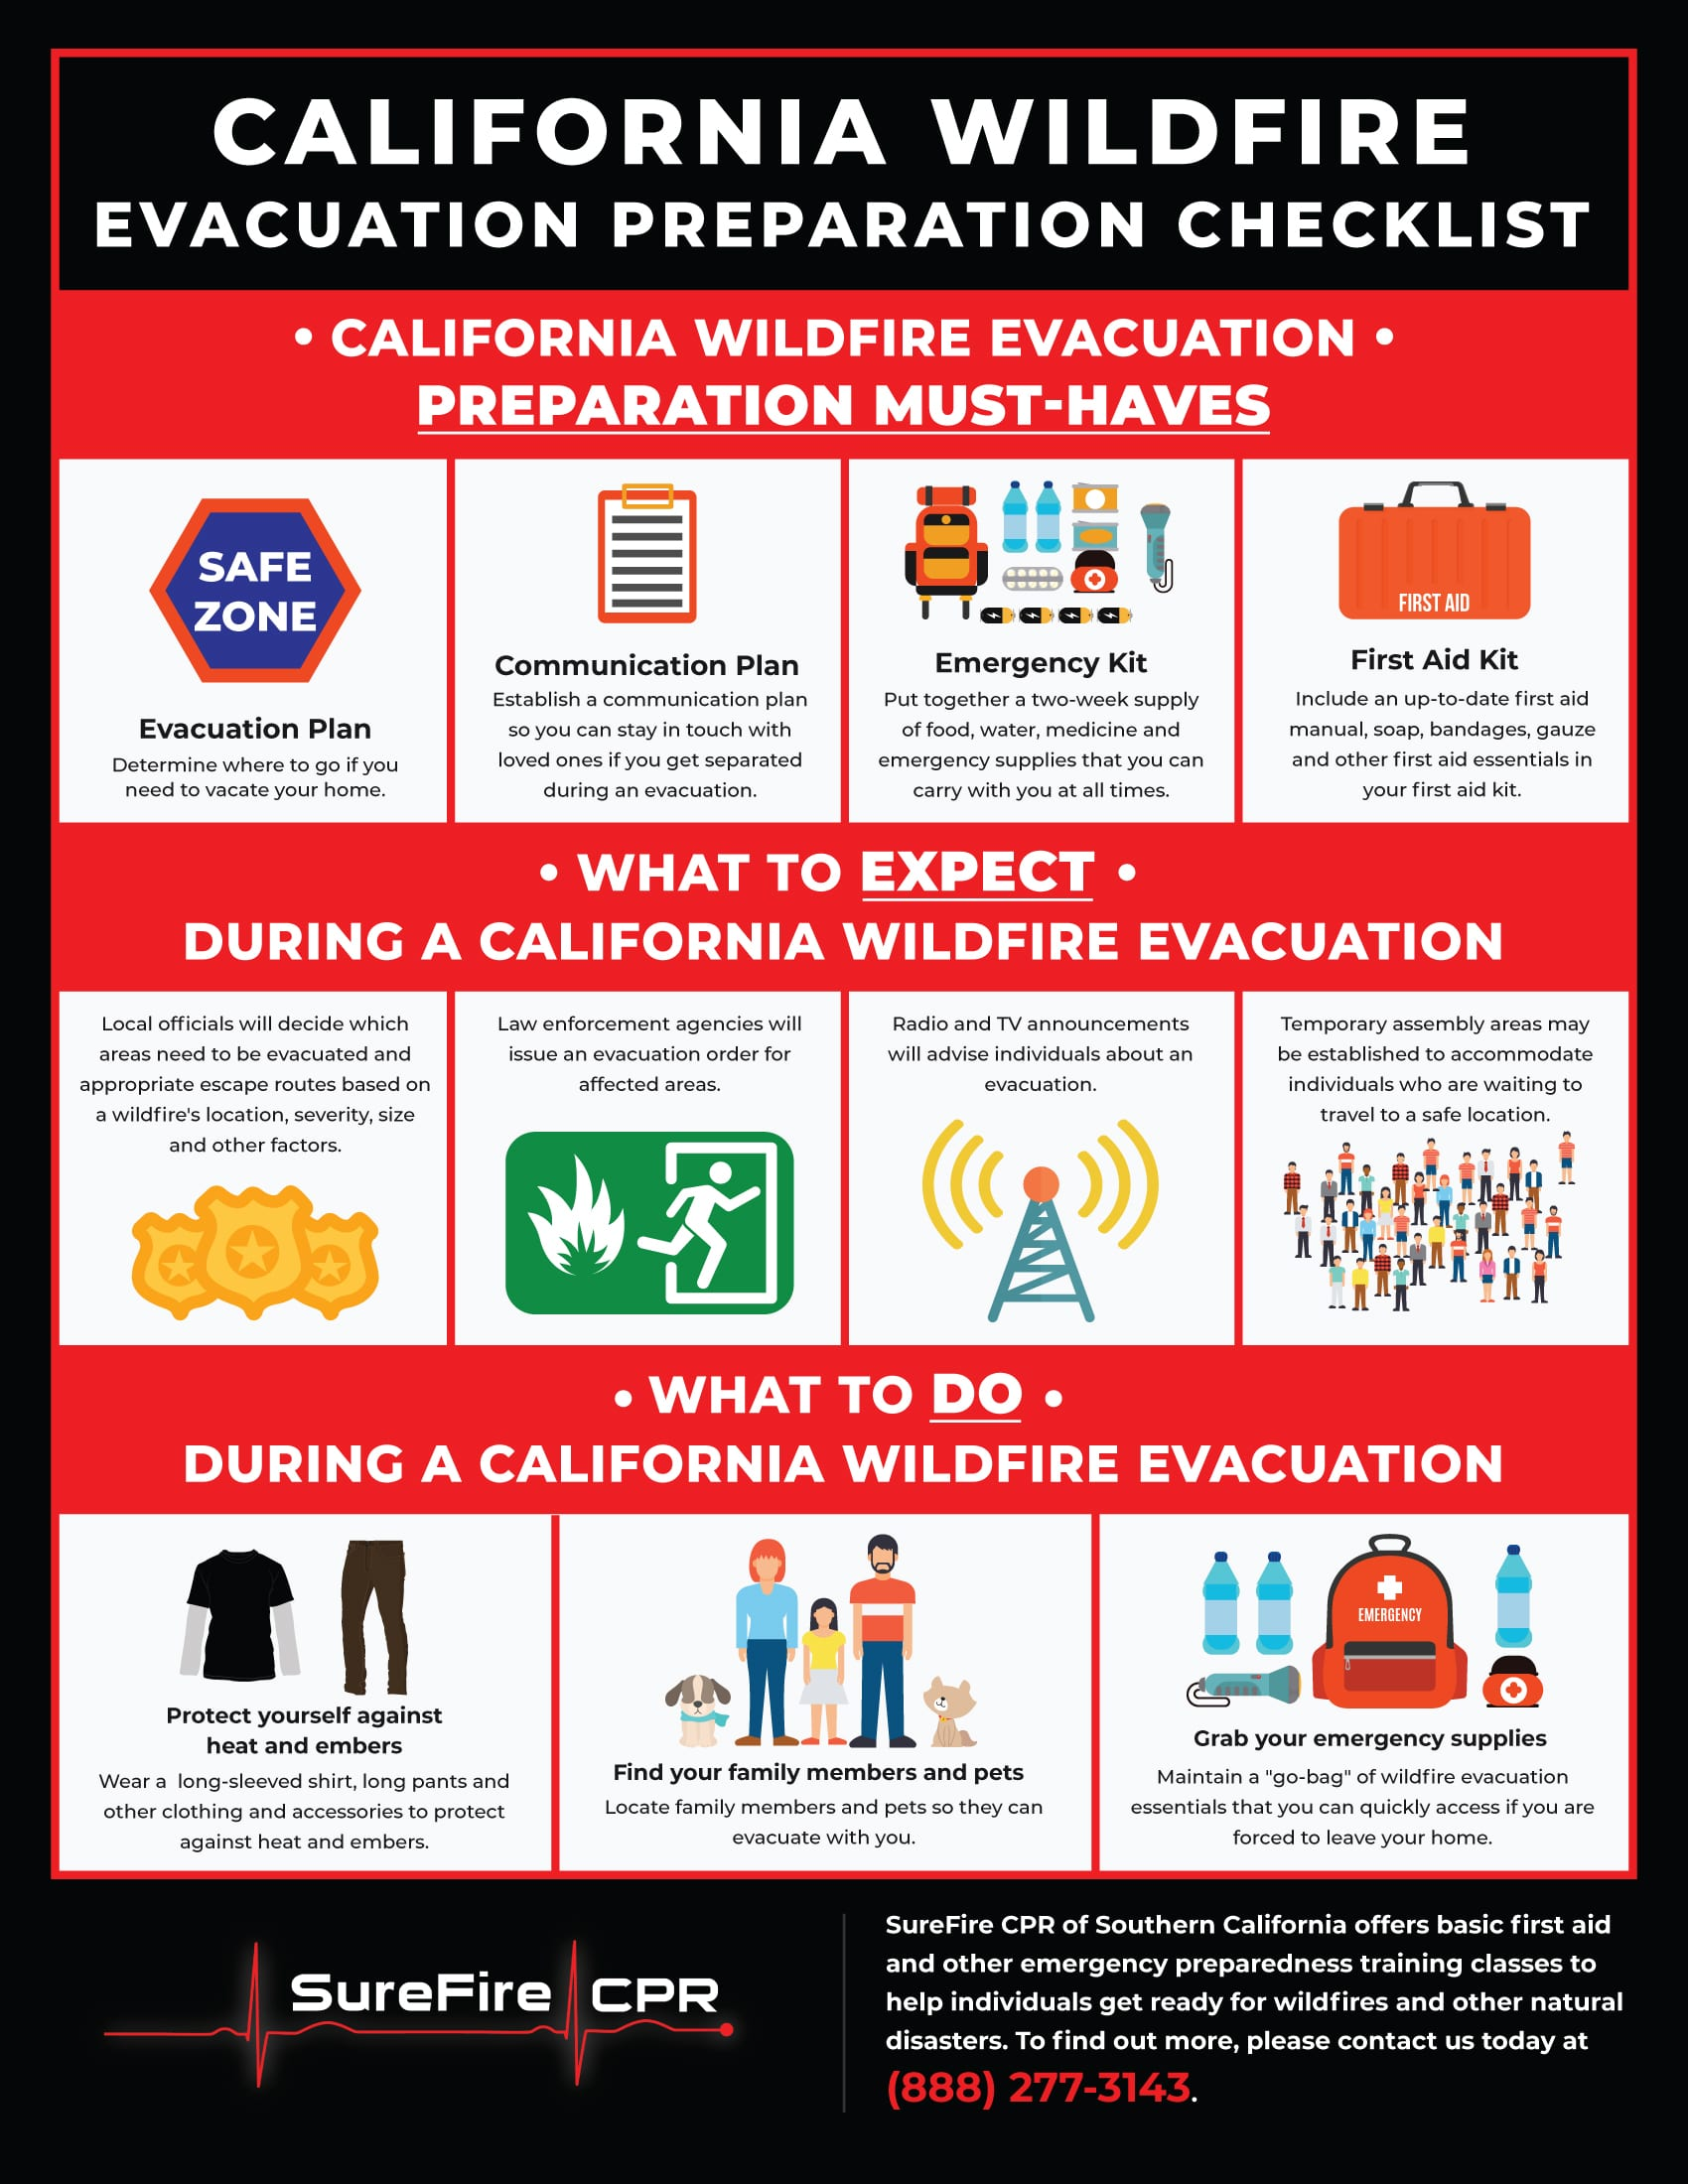 California Wildfire Home Safety Checklist